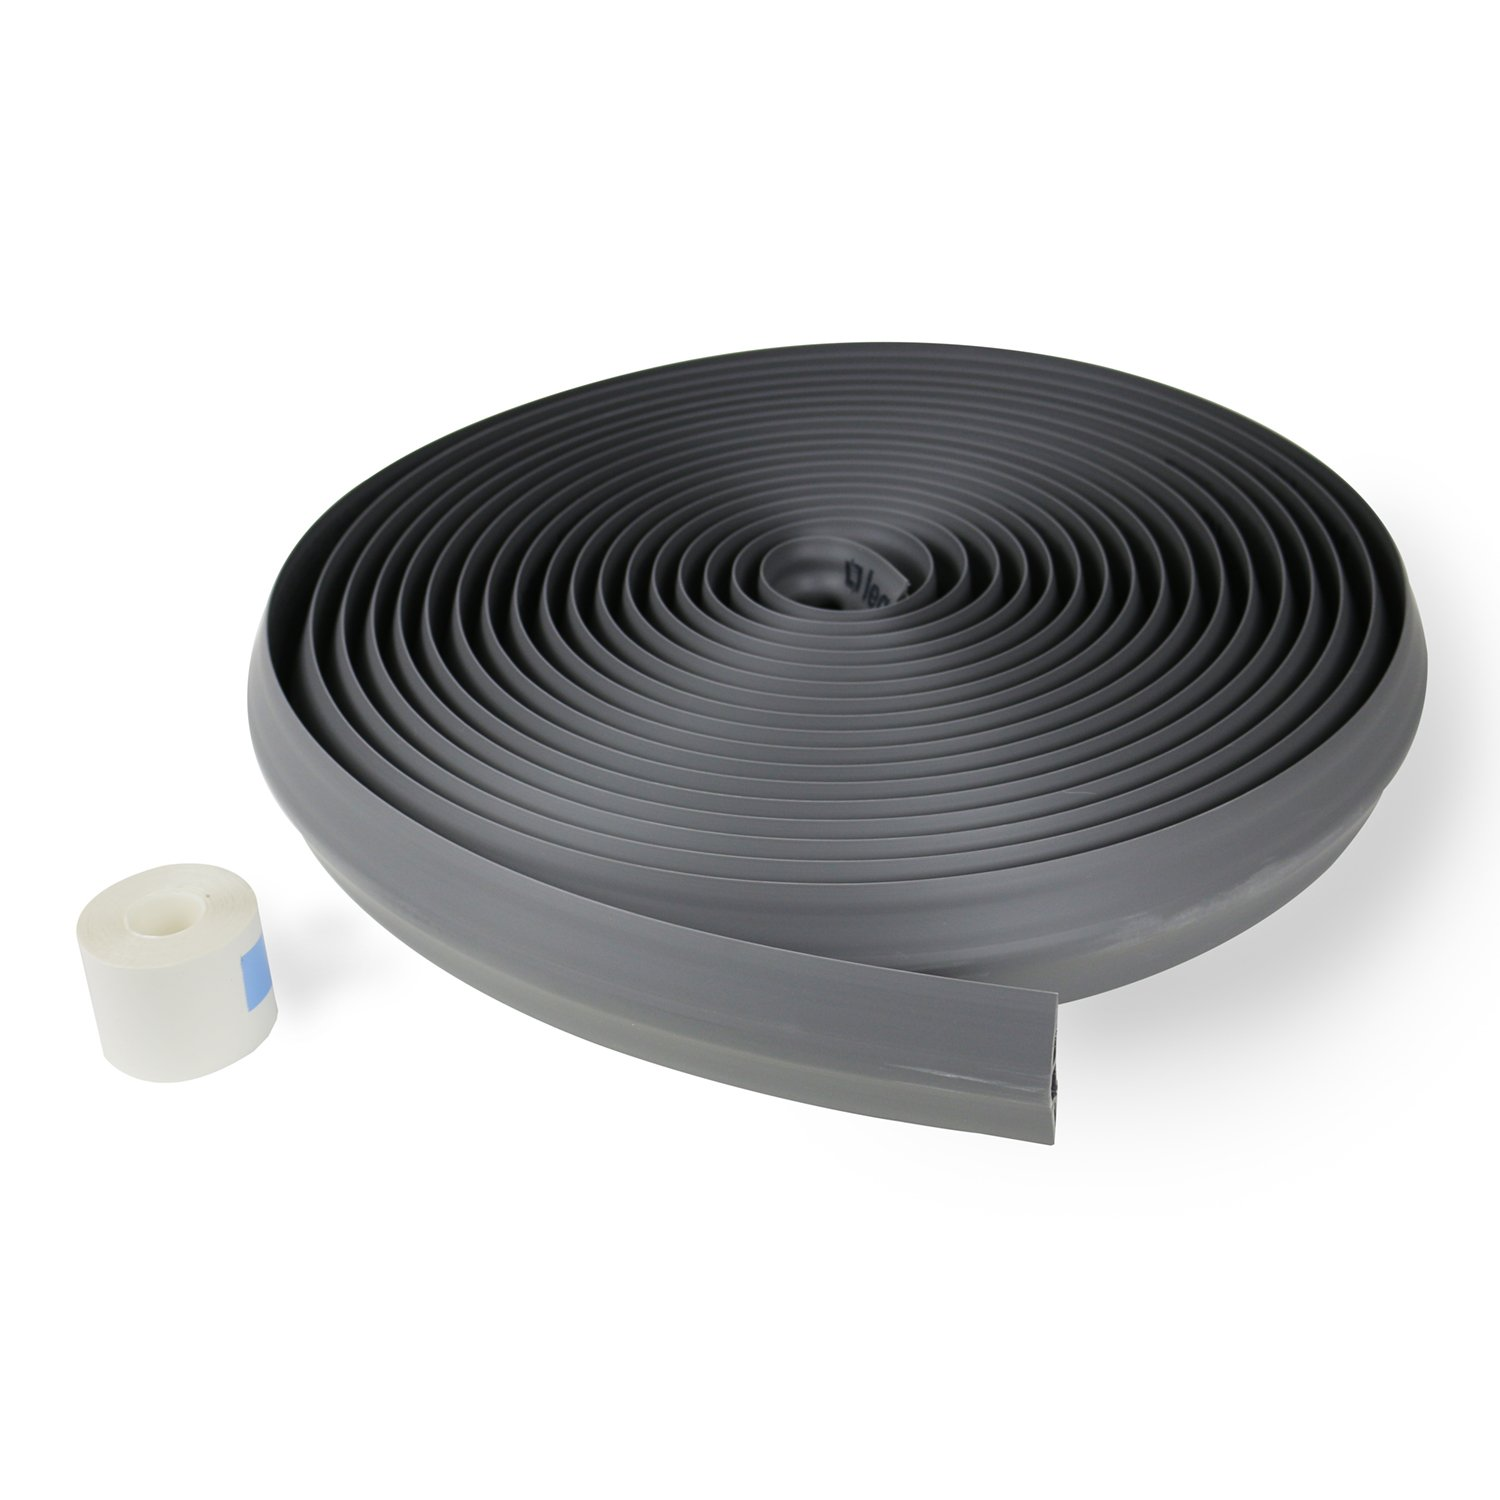 Legrand - Wiremold CDG-50 Corduct Overfloor Cord Protector-  Rubber Duct Floor Cord Cover, Gray (50 Feet)